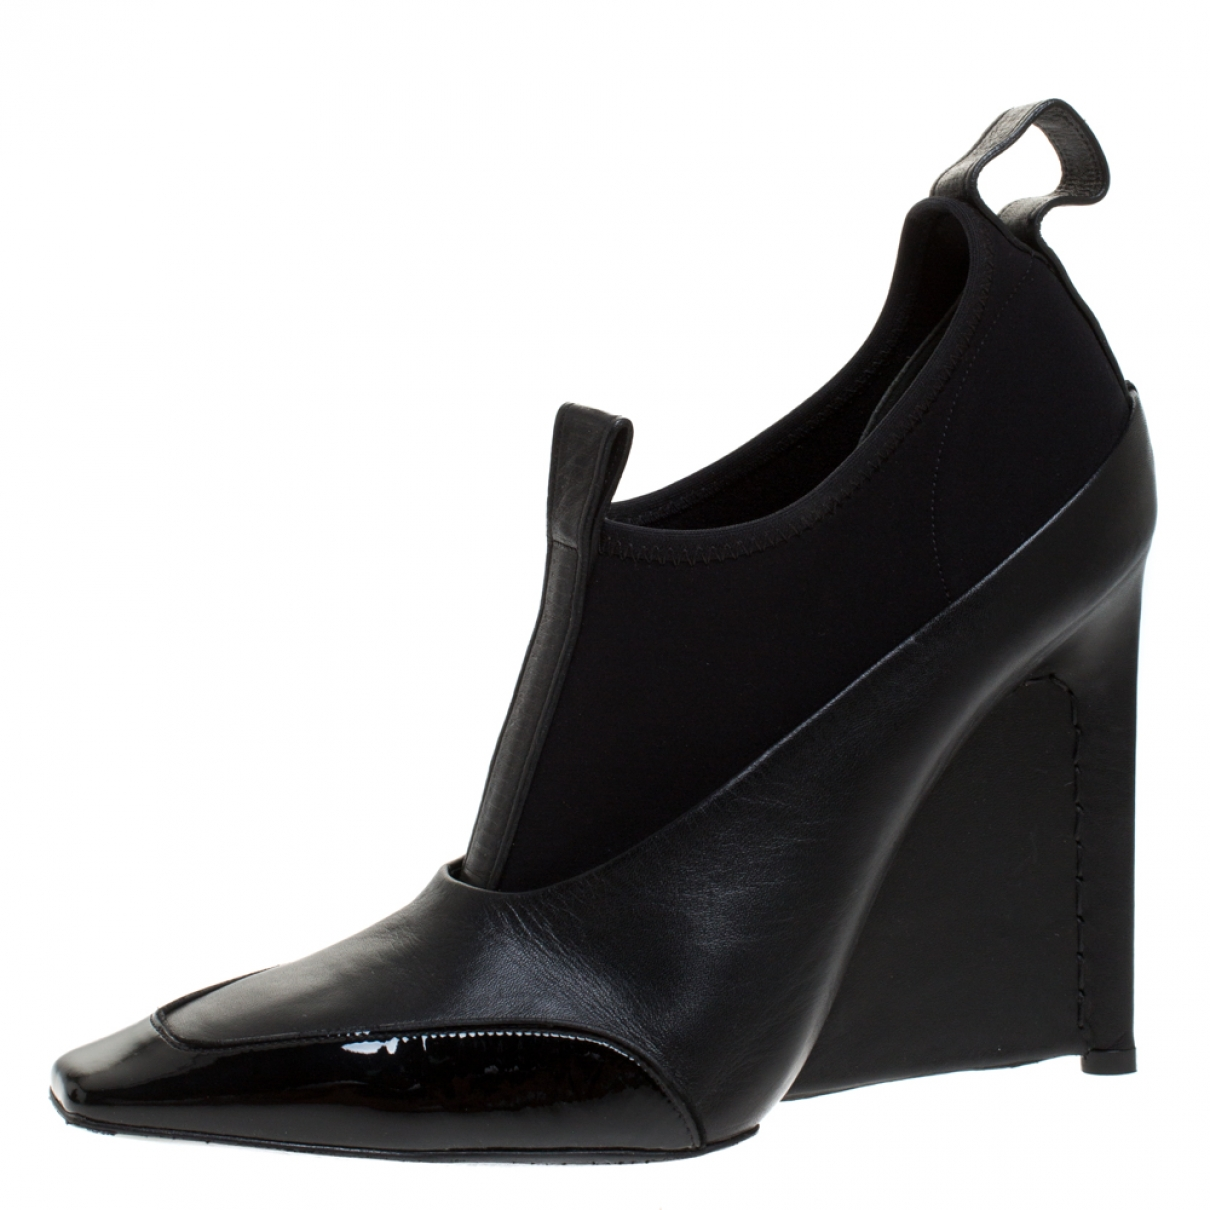 Balenciaga \N Black Leather Boots for Women 9 US